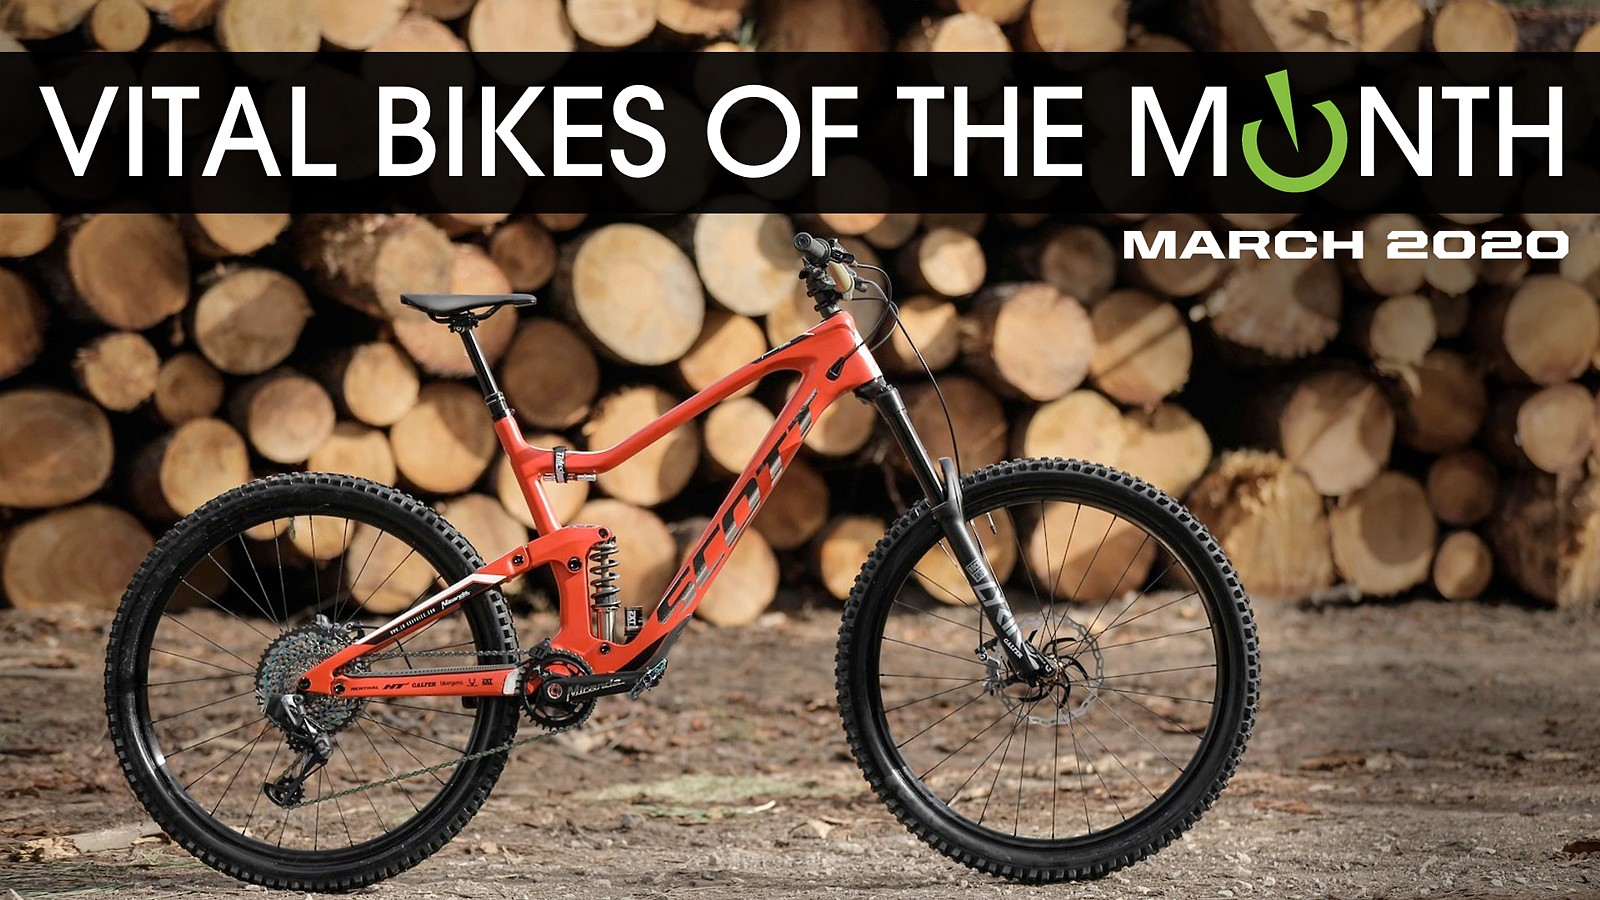 Vital Bikes of the Month - March 2020 - Vital Bike of the Day March 2020 - Mountain Biking Pictures - Vital MTB